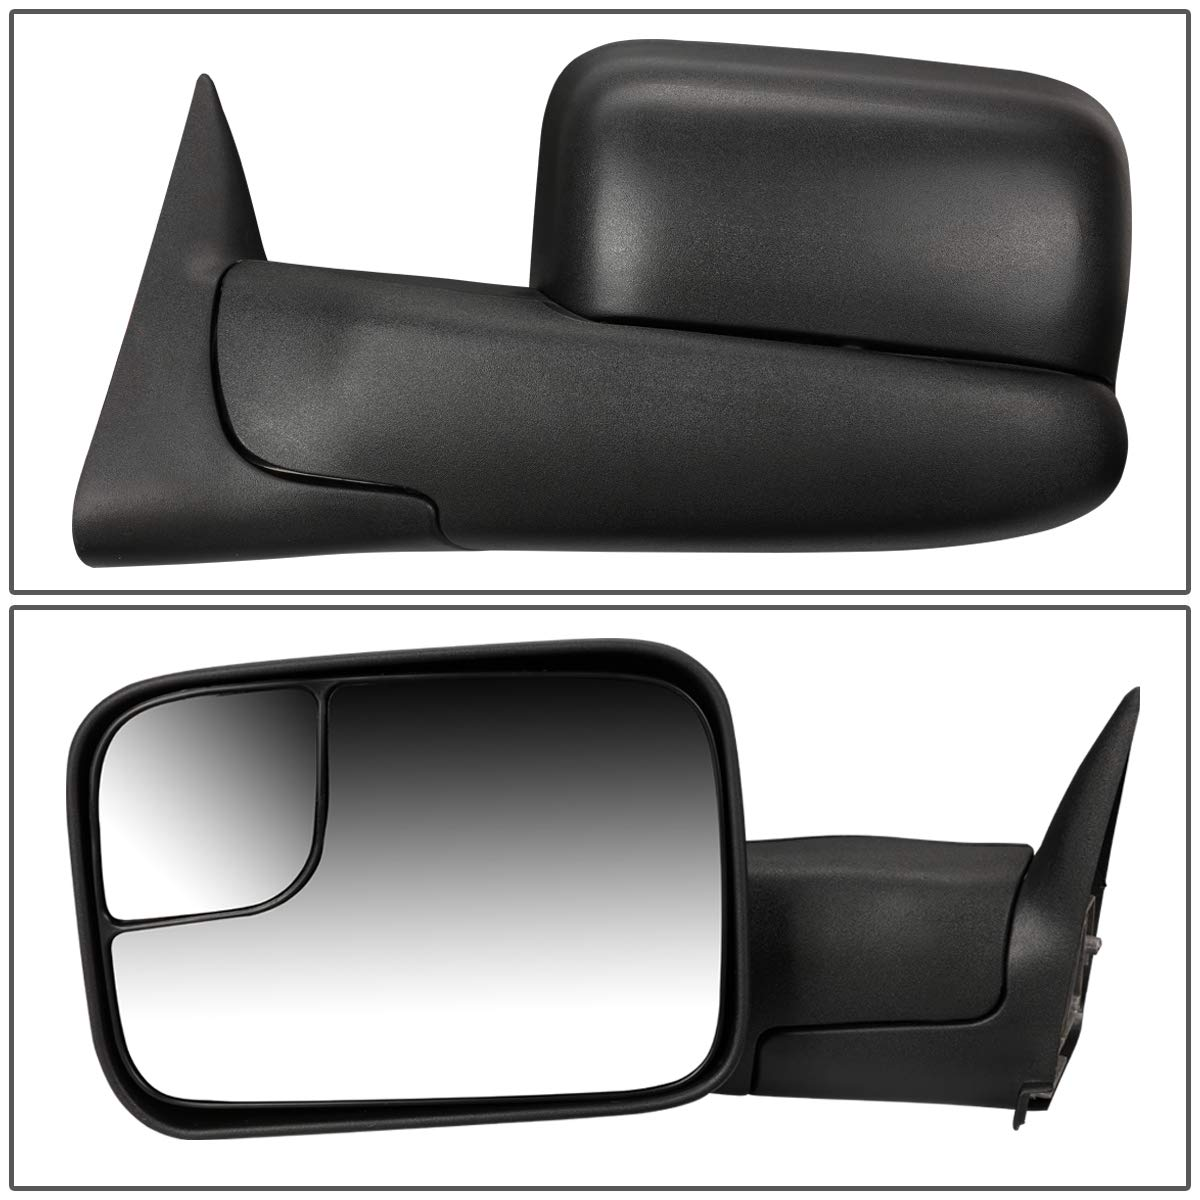 Towing Side Mirror Assembly DNA motoring TWM-018-T111-BK-R Right Side Only